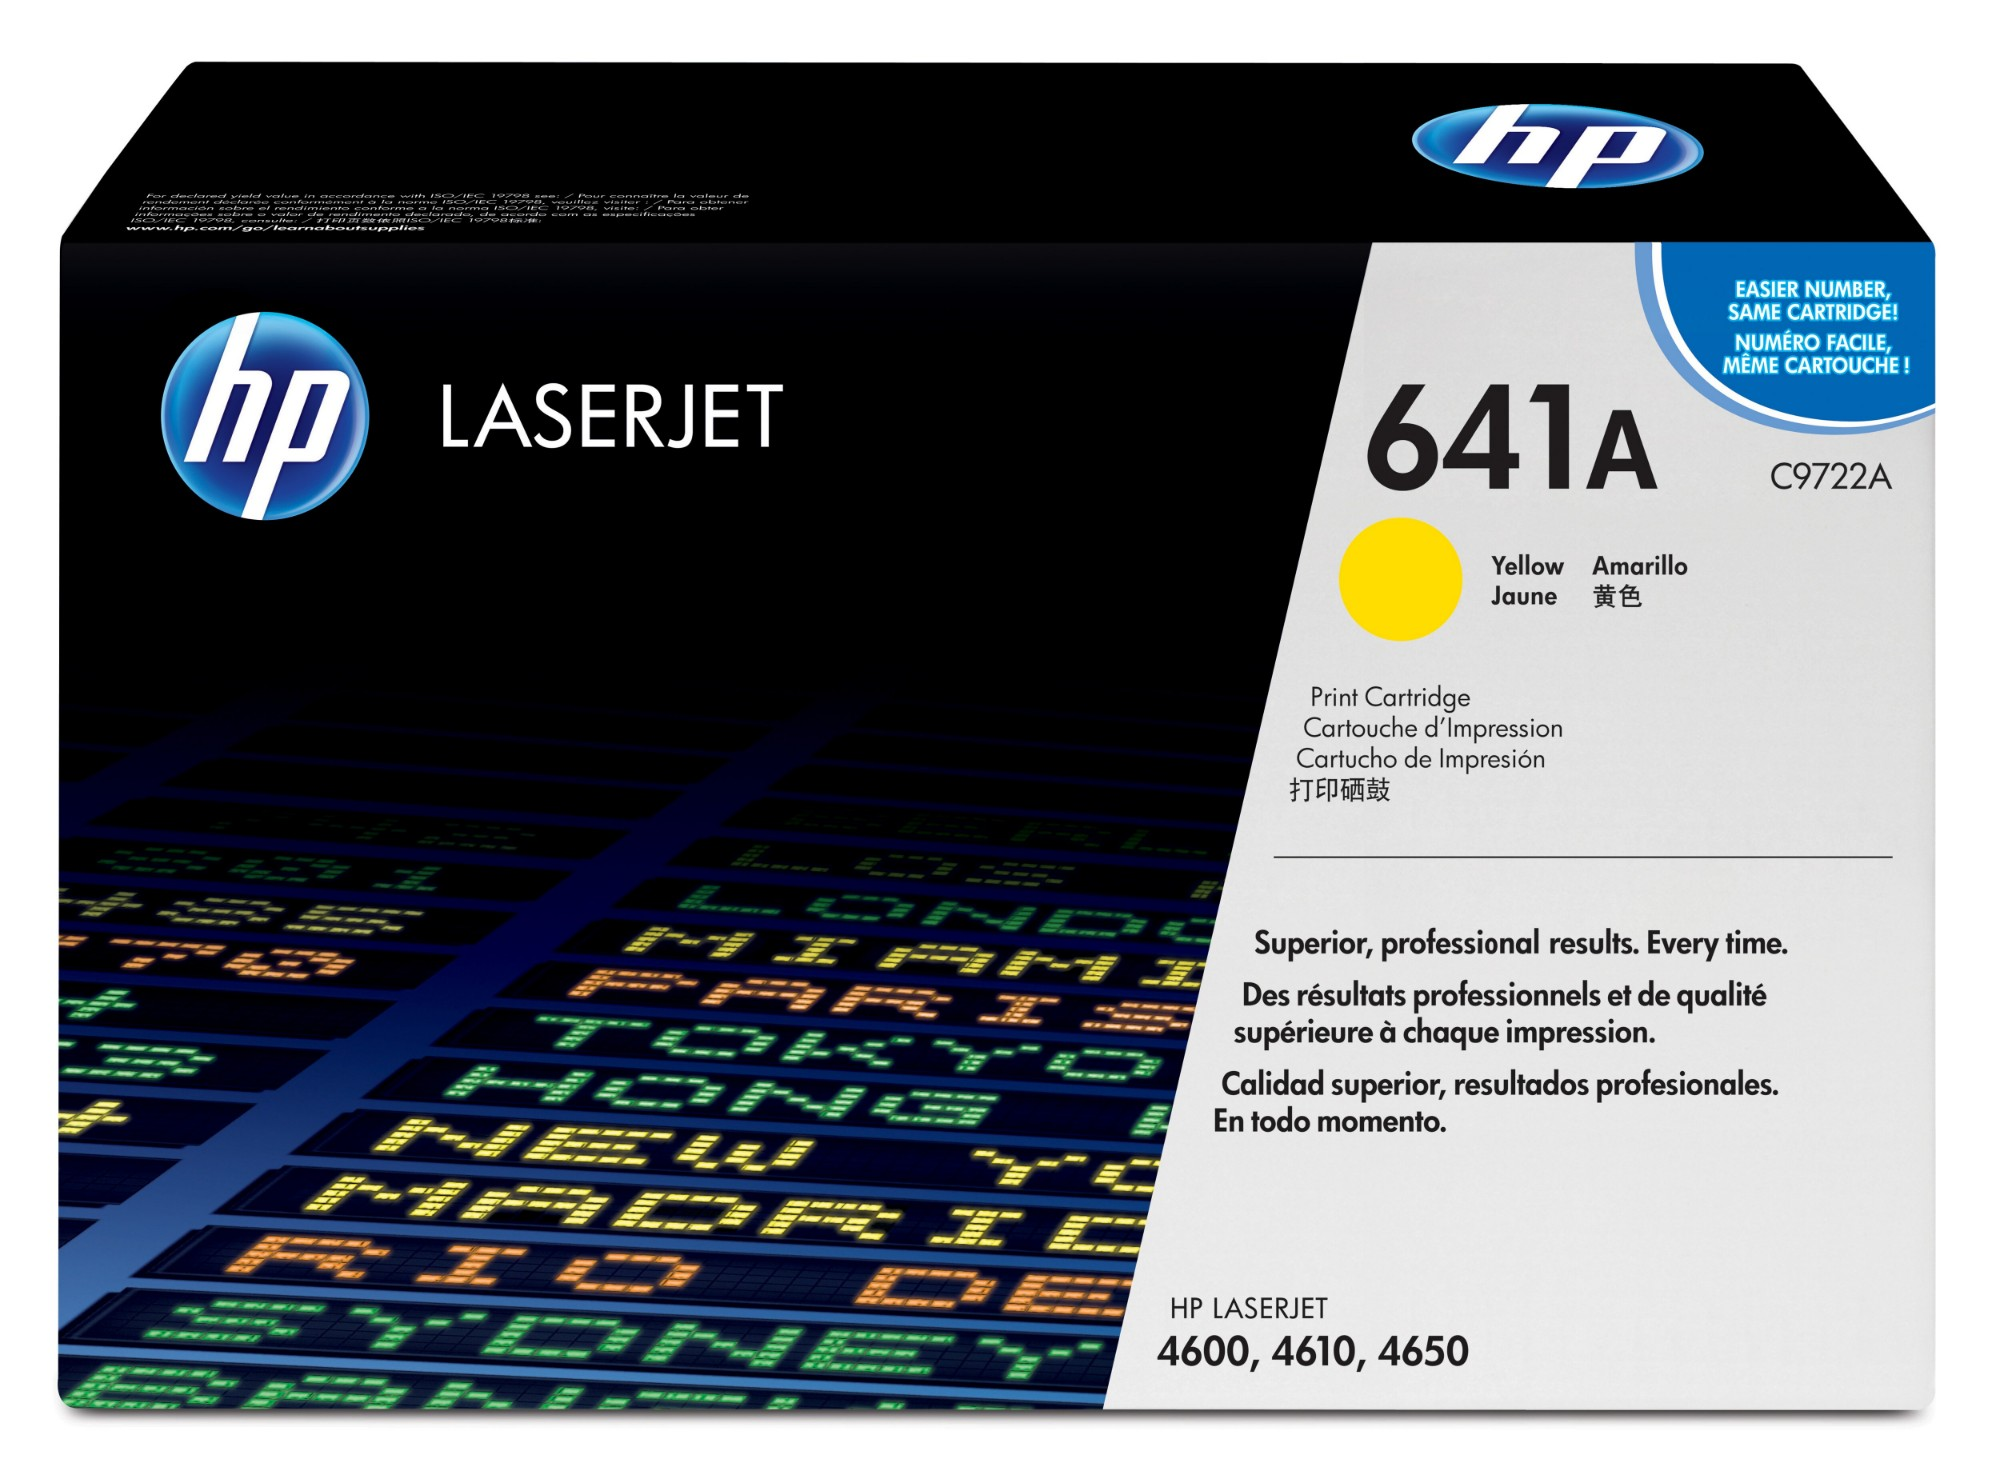 HP C9722A (641A) Toner yellow, 8K pages @ 5% coverage